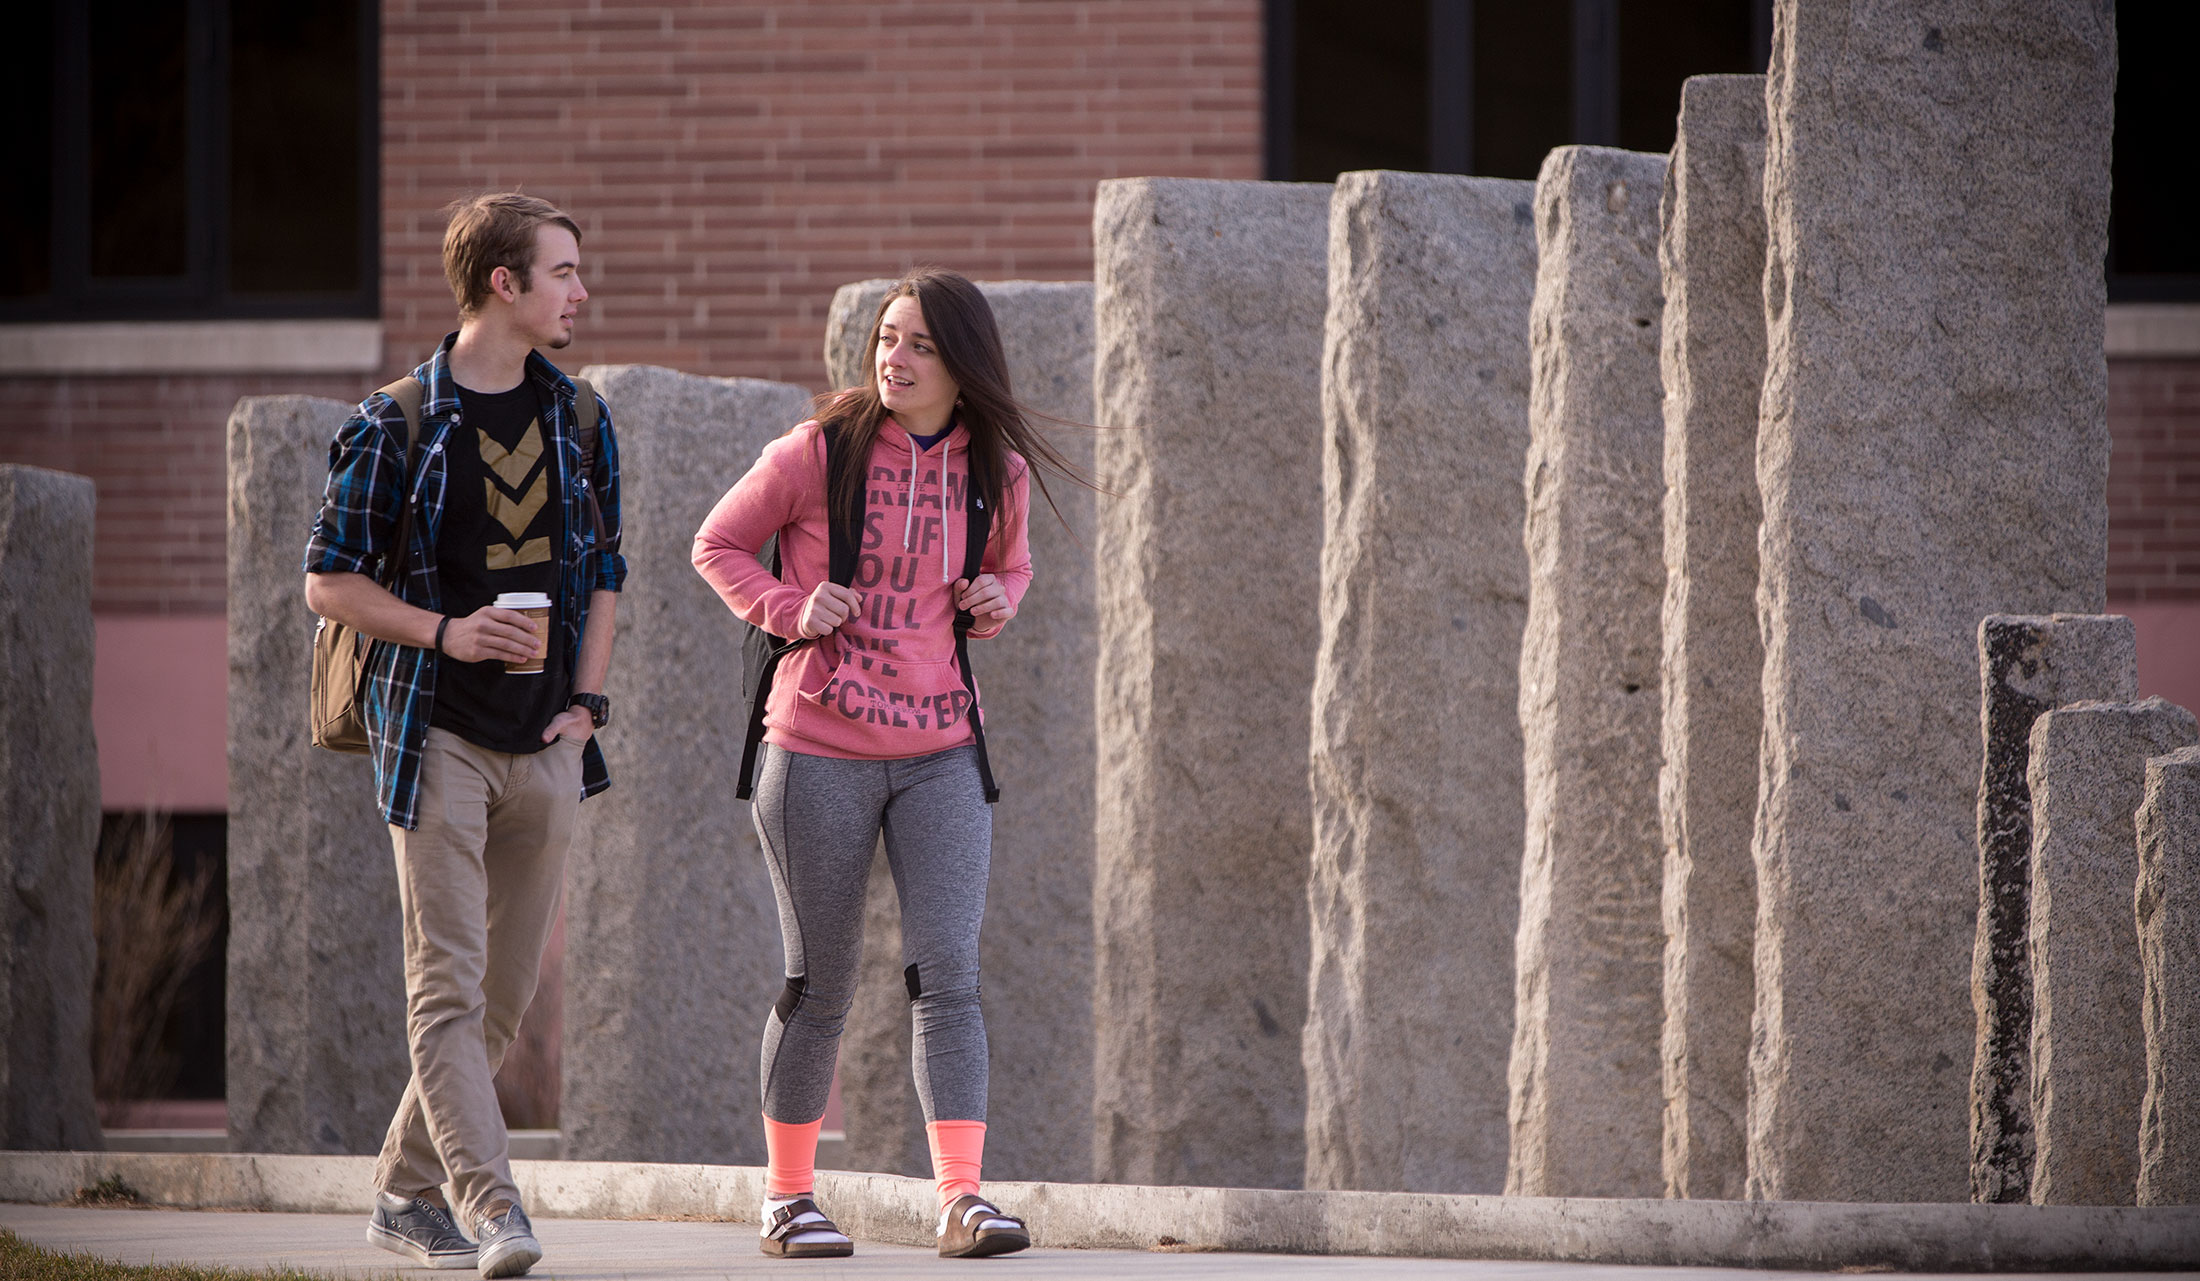 Two students walking by the Sladich Fountain